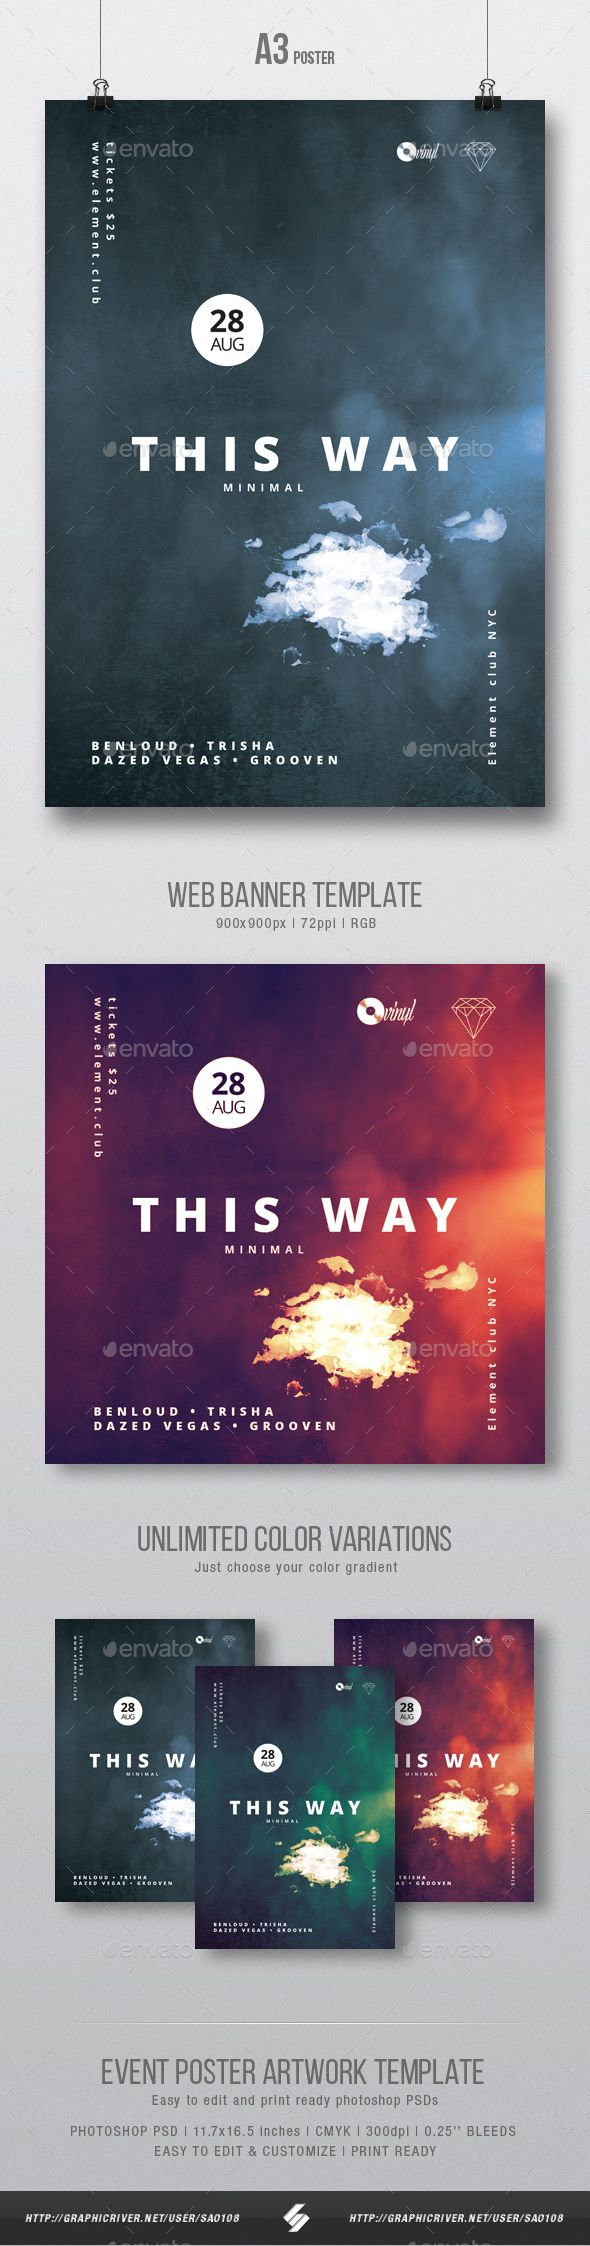 This Way - Minimal Party Flyer / Poster Artwork Template A3 - Clubs & Parties Events